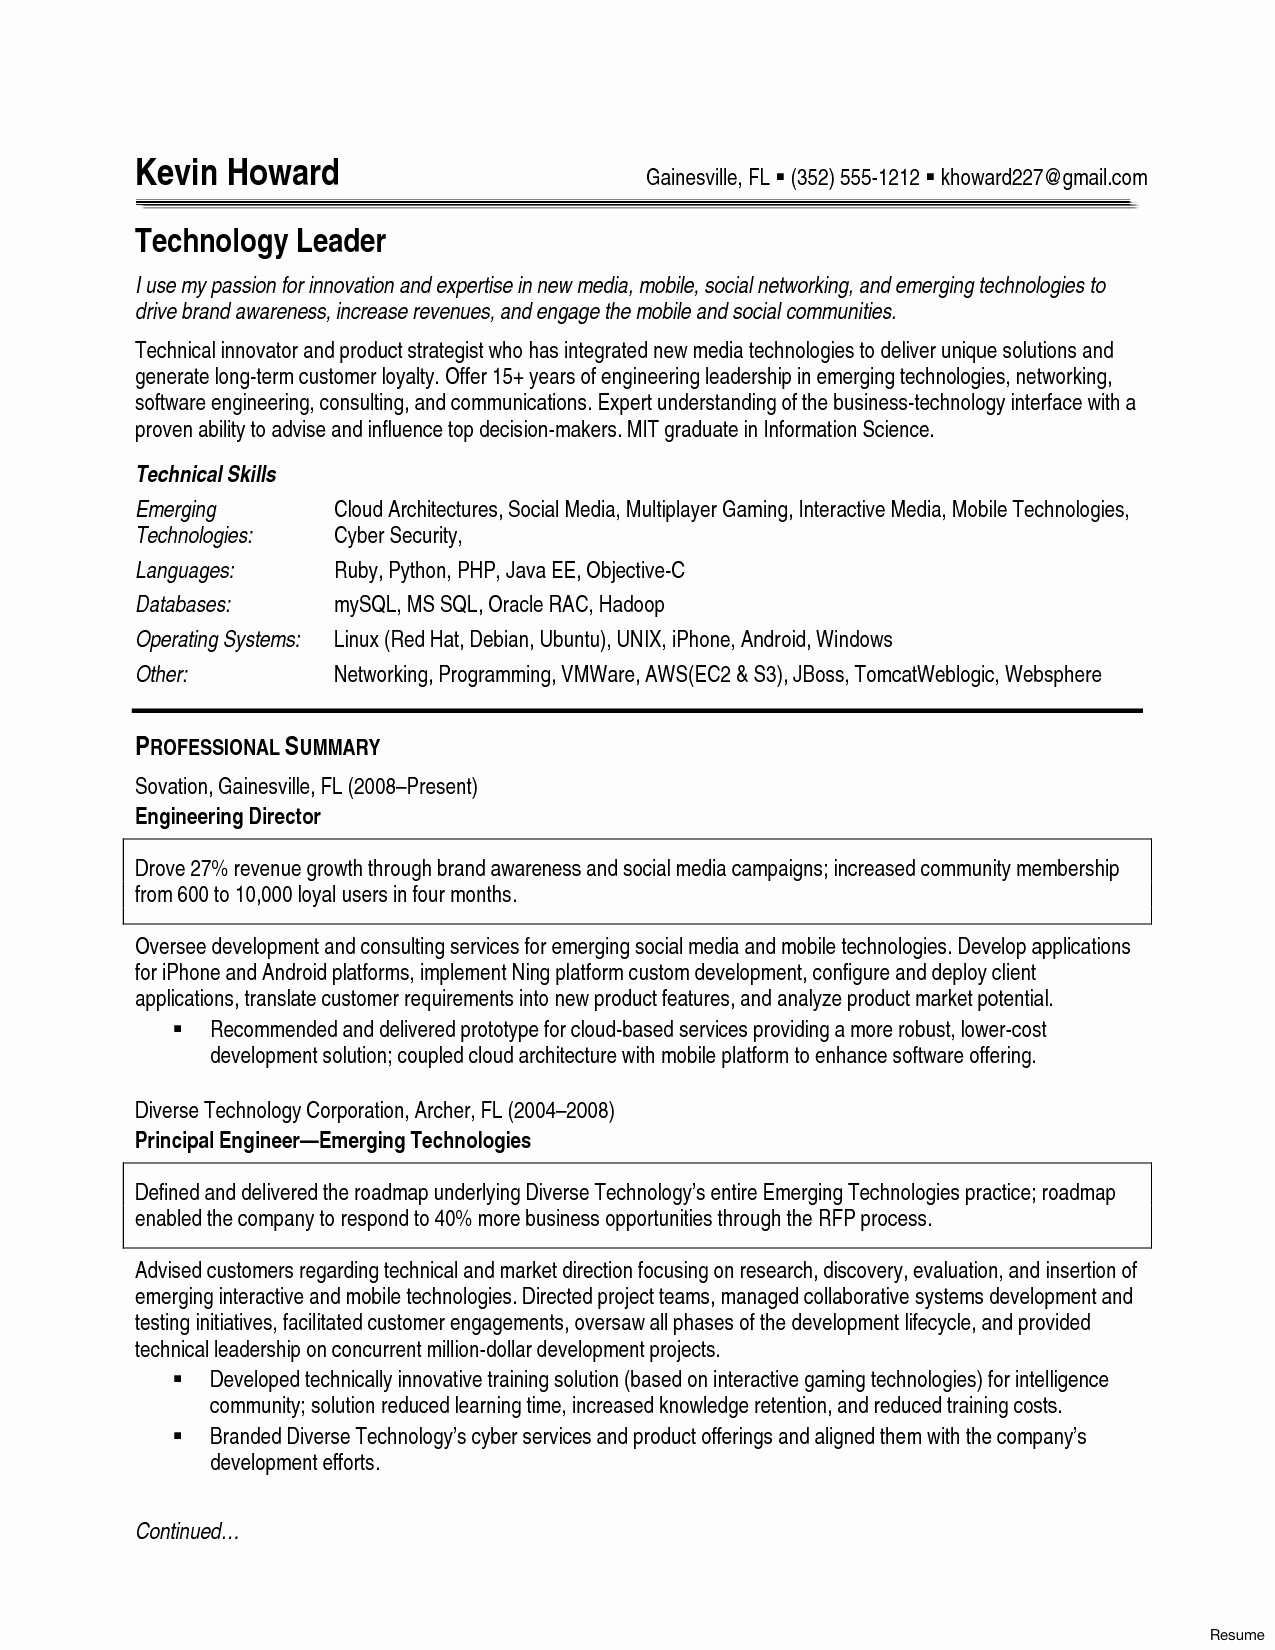 50 Regular Entry Level Cyber Security Resume Ge A